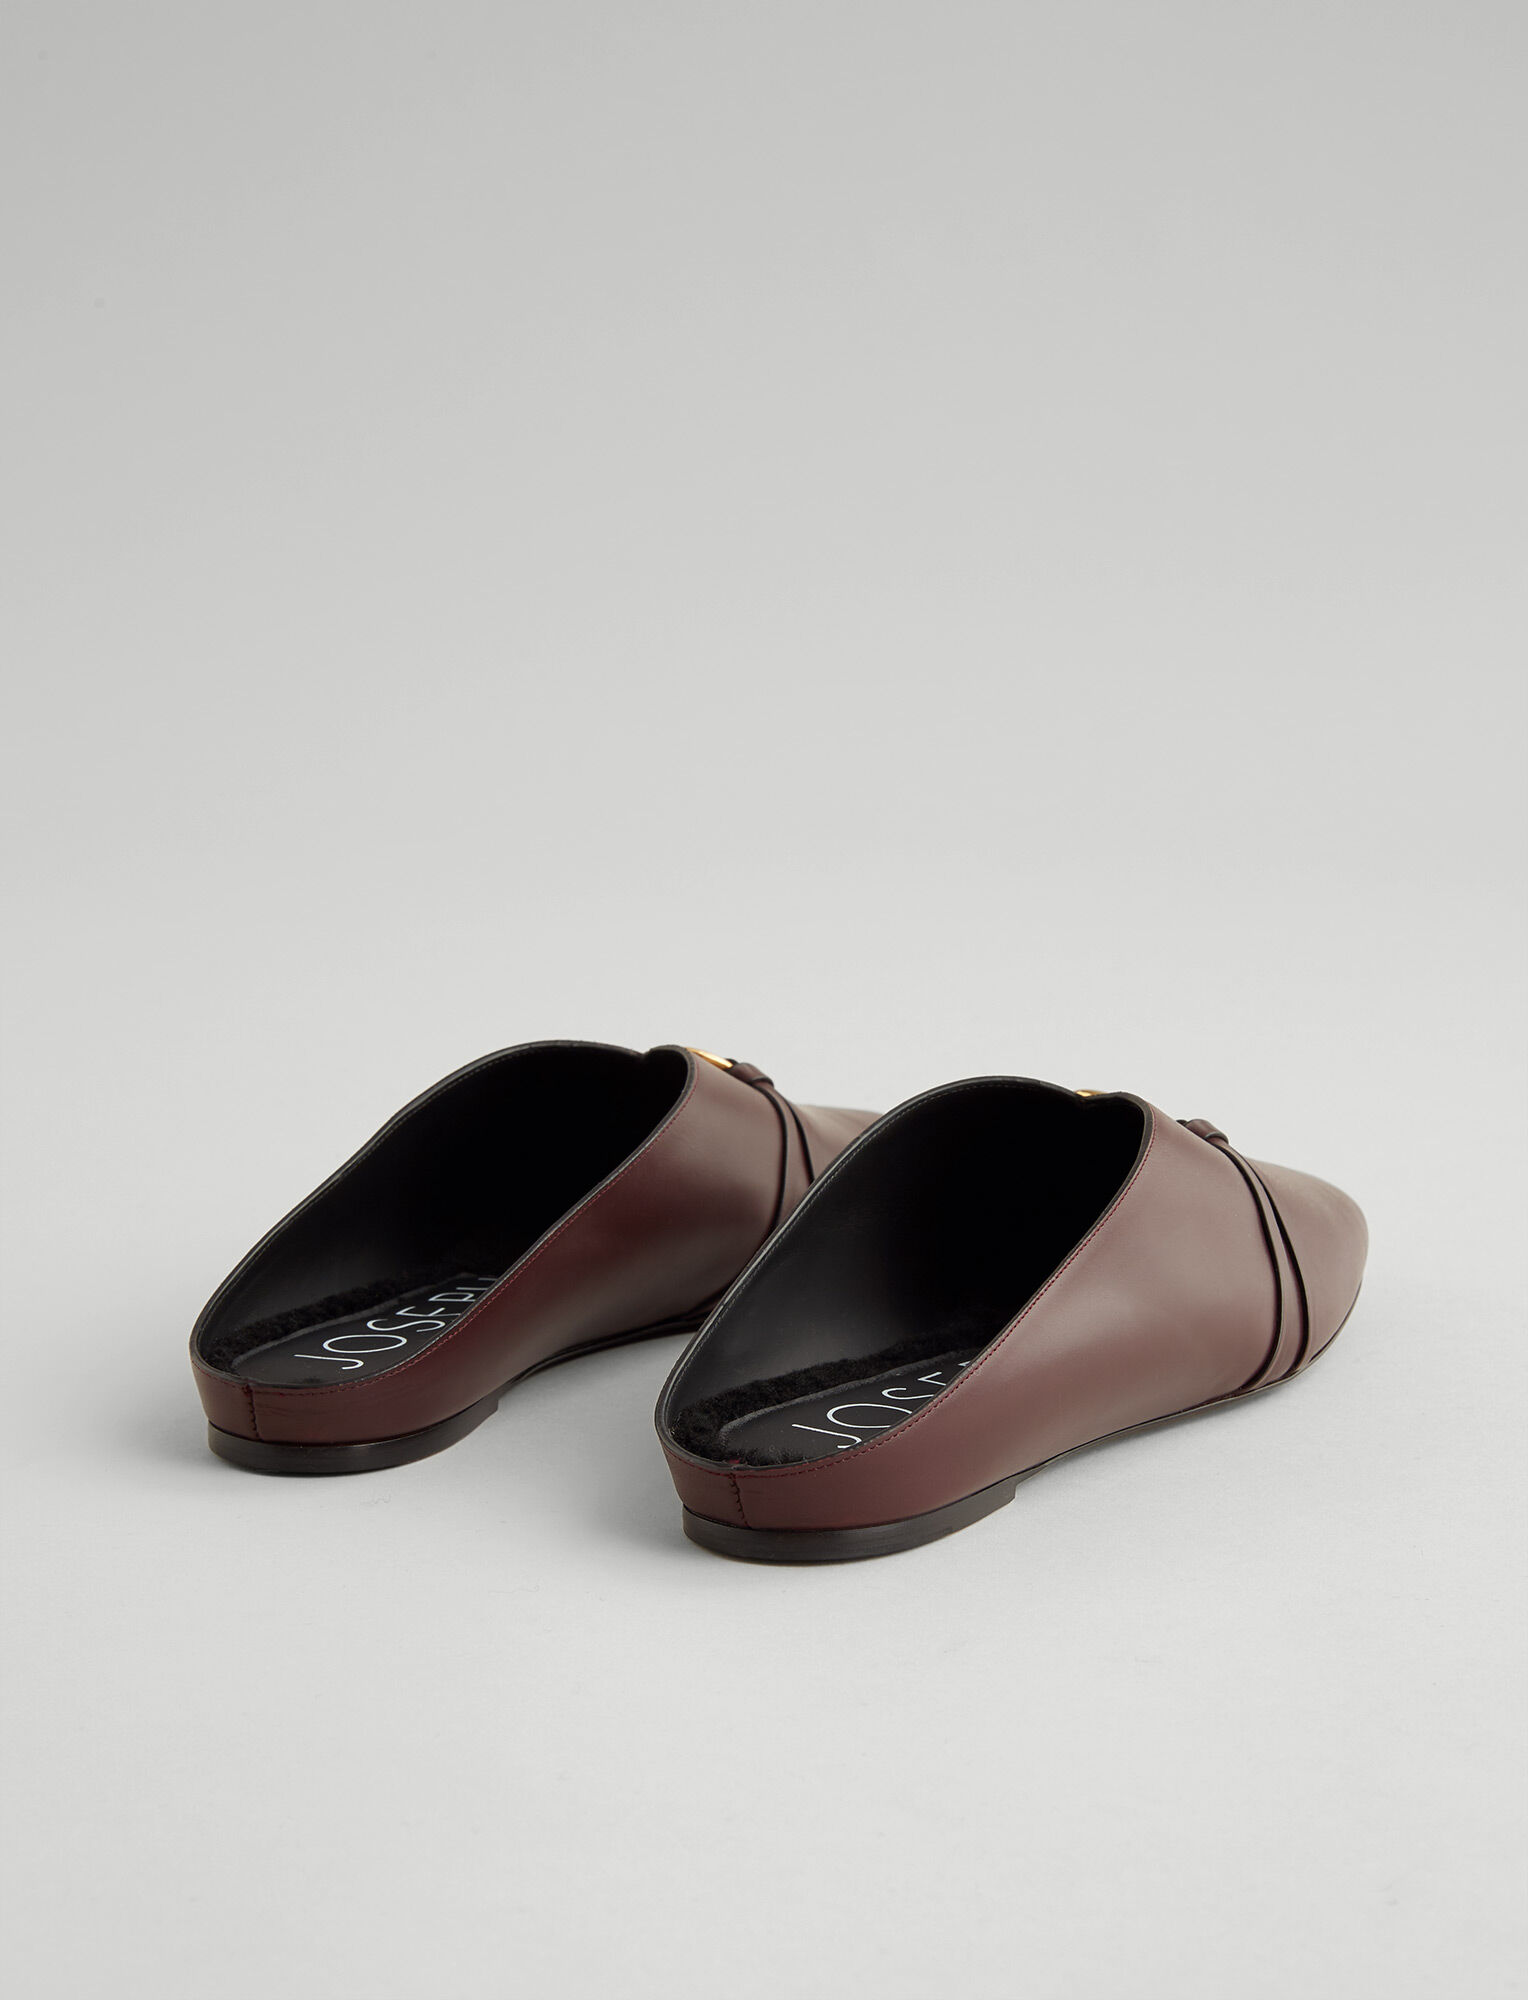 Joseph, Elsa Leather Mule, in RAISIN